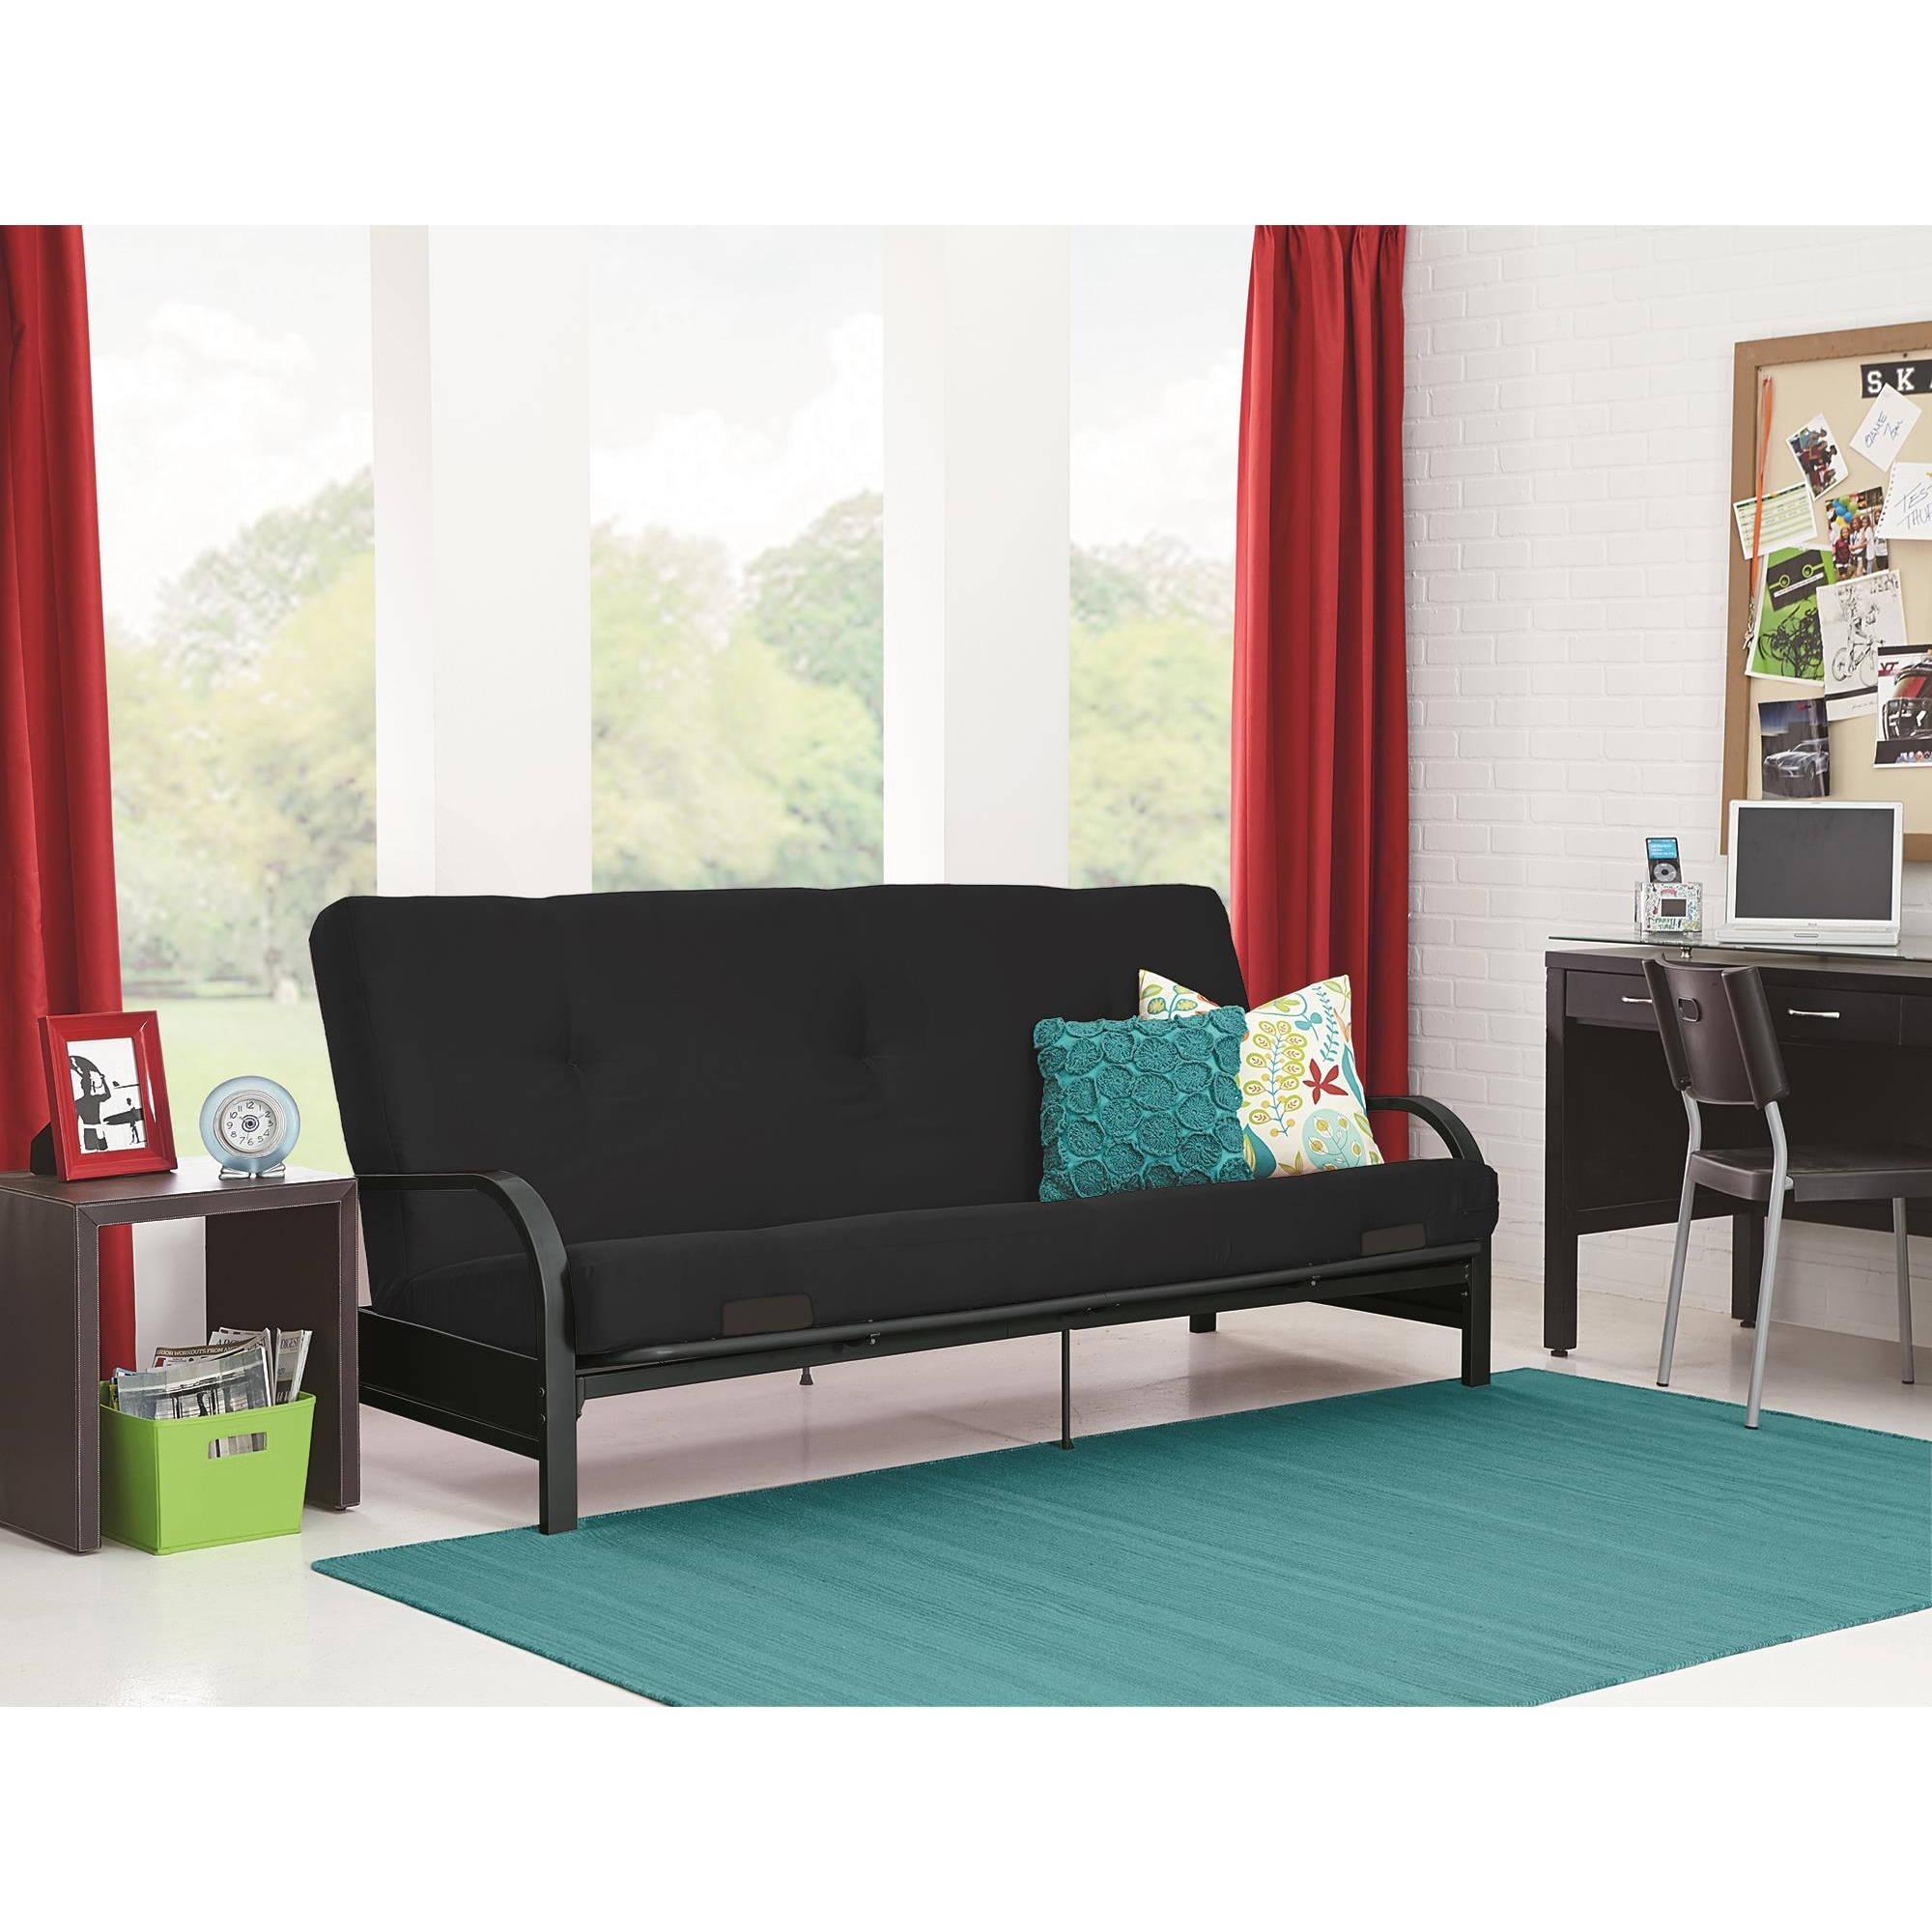 stretch morgan 1 piece sofa furniture cover traditional style sofas 20 best mainstay ideas